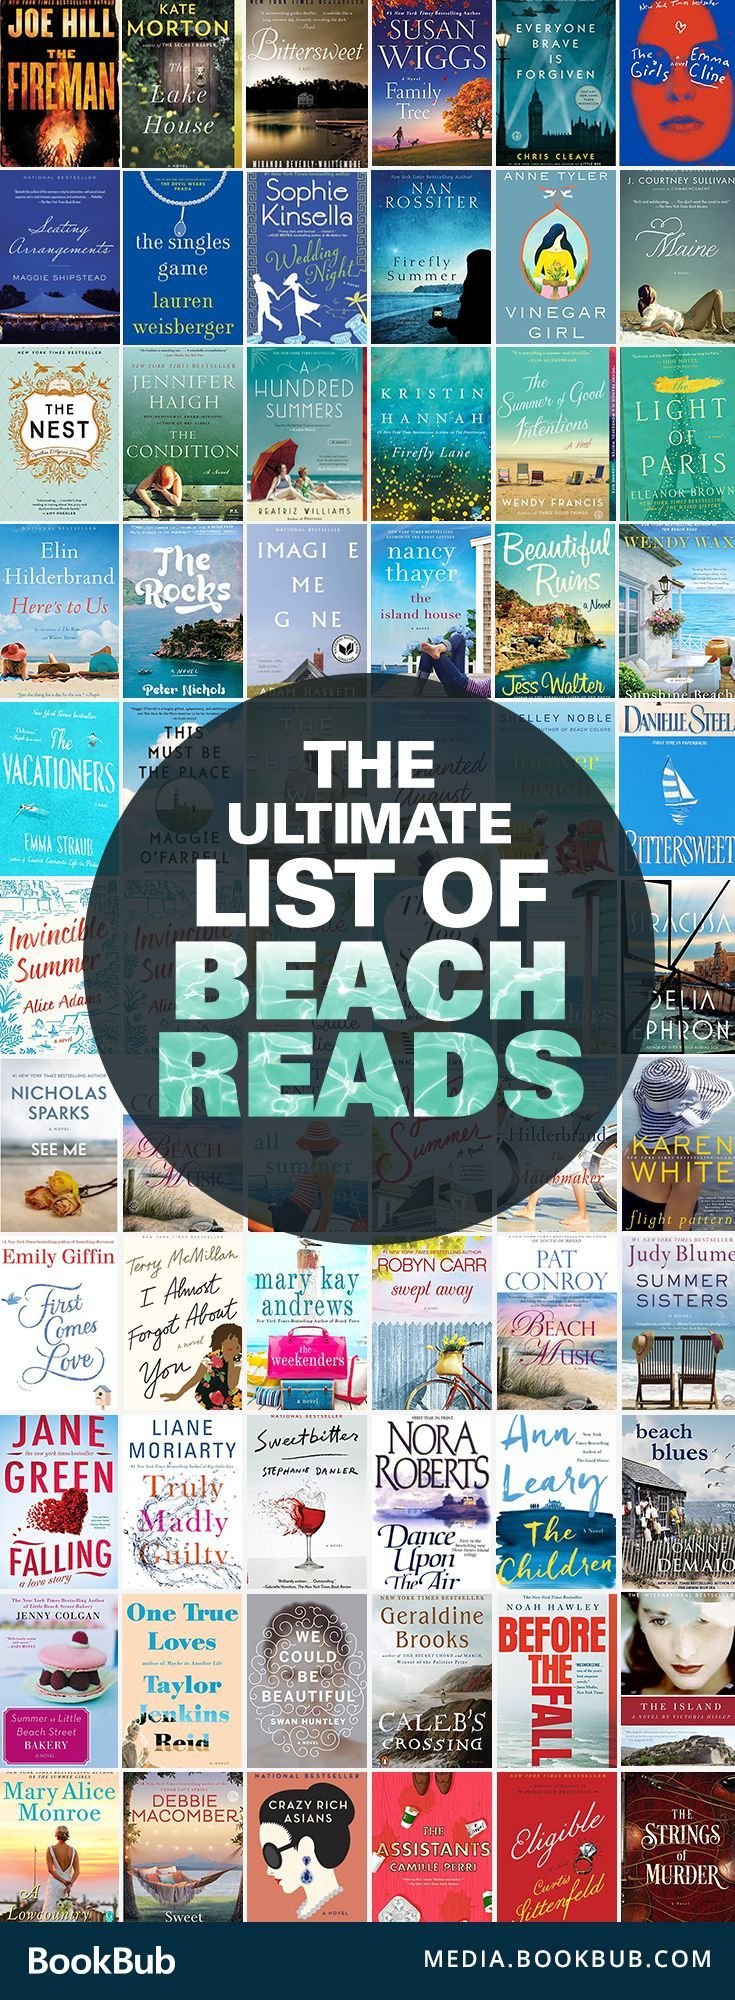 The Ultimate List Of Beach Reads